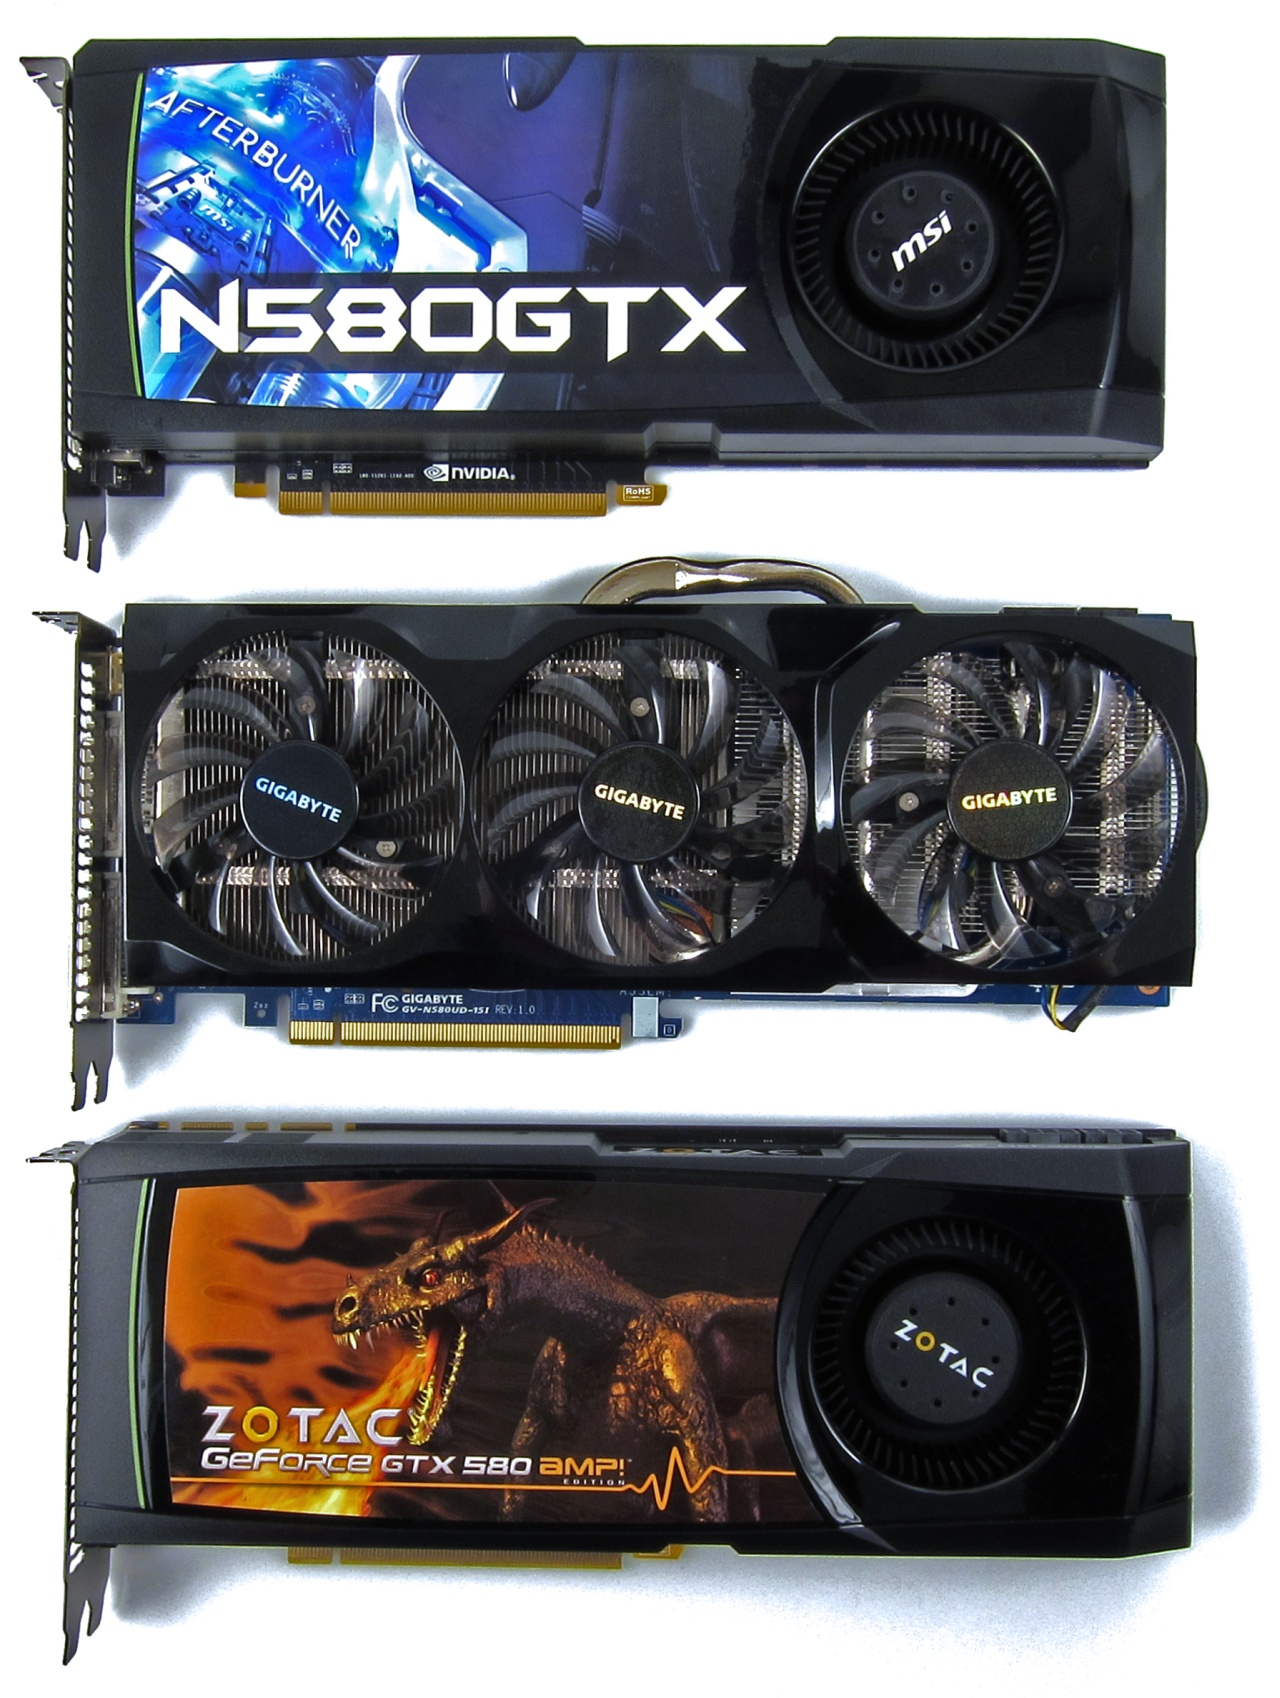 Overclocked NVIDIA GeForce GTX 580 Round-Up